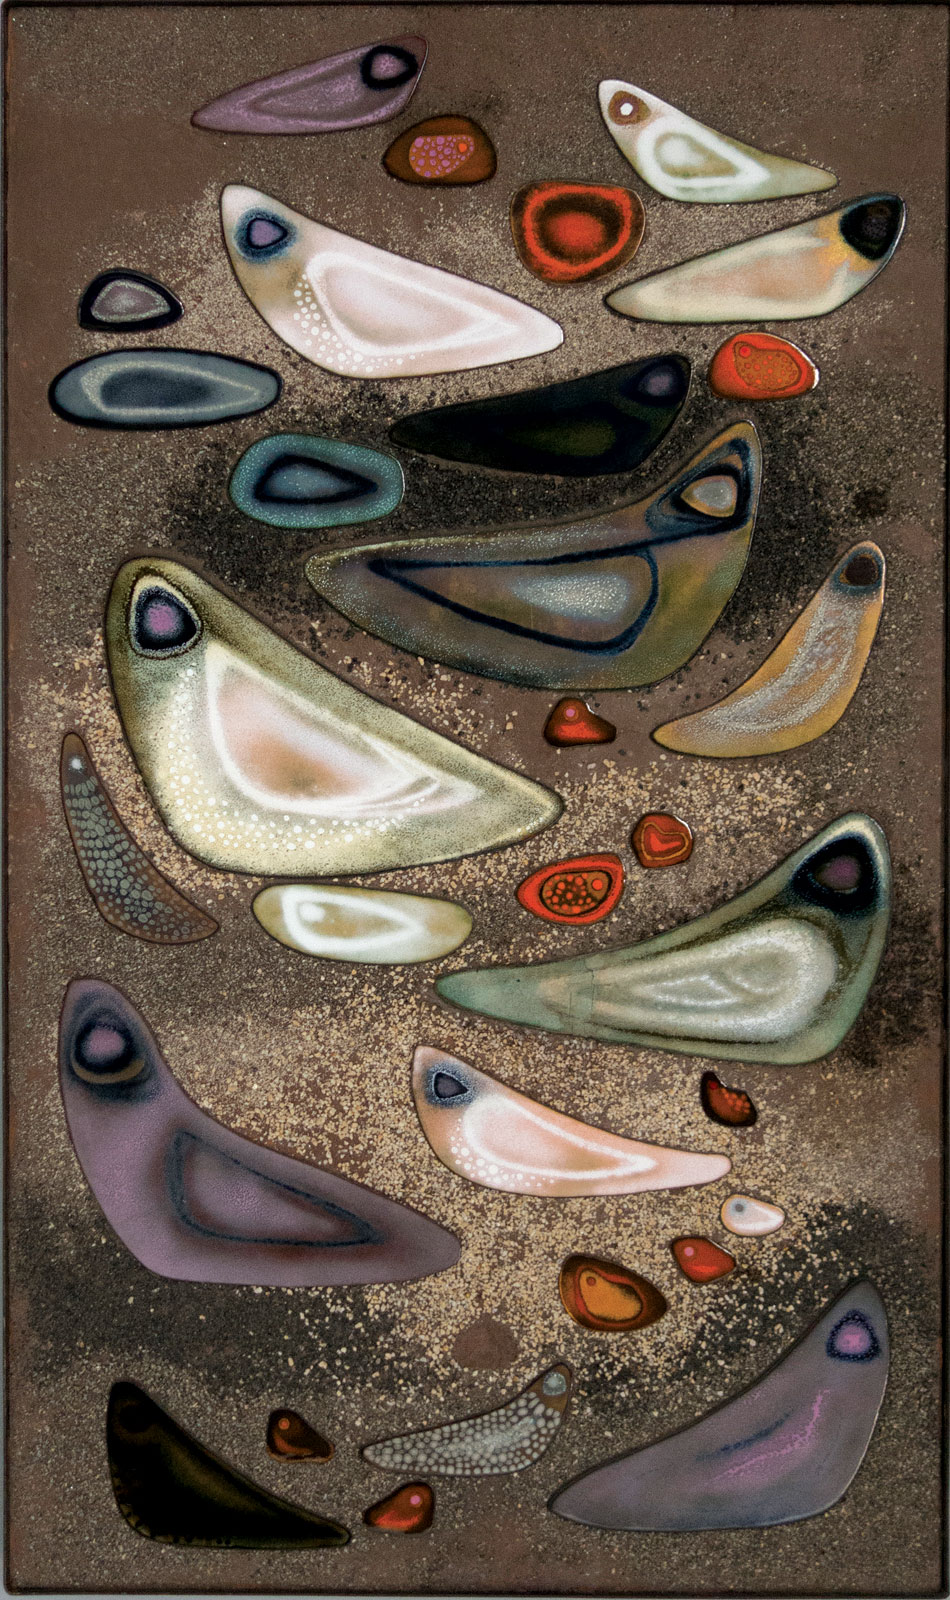 SEA BIRDS PANEL of enamel on copper, sand, paint, 81.28 x 48.26 centimeters, circa 1954. Collection of Georgia Museum of Art, University of Georgia. Photograph courtesy of Georgia Museum of Art.